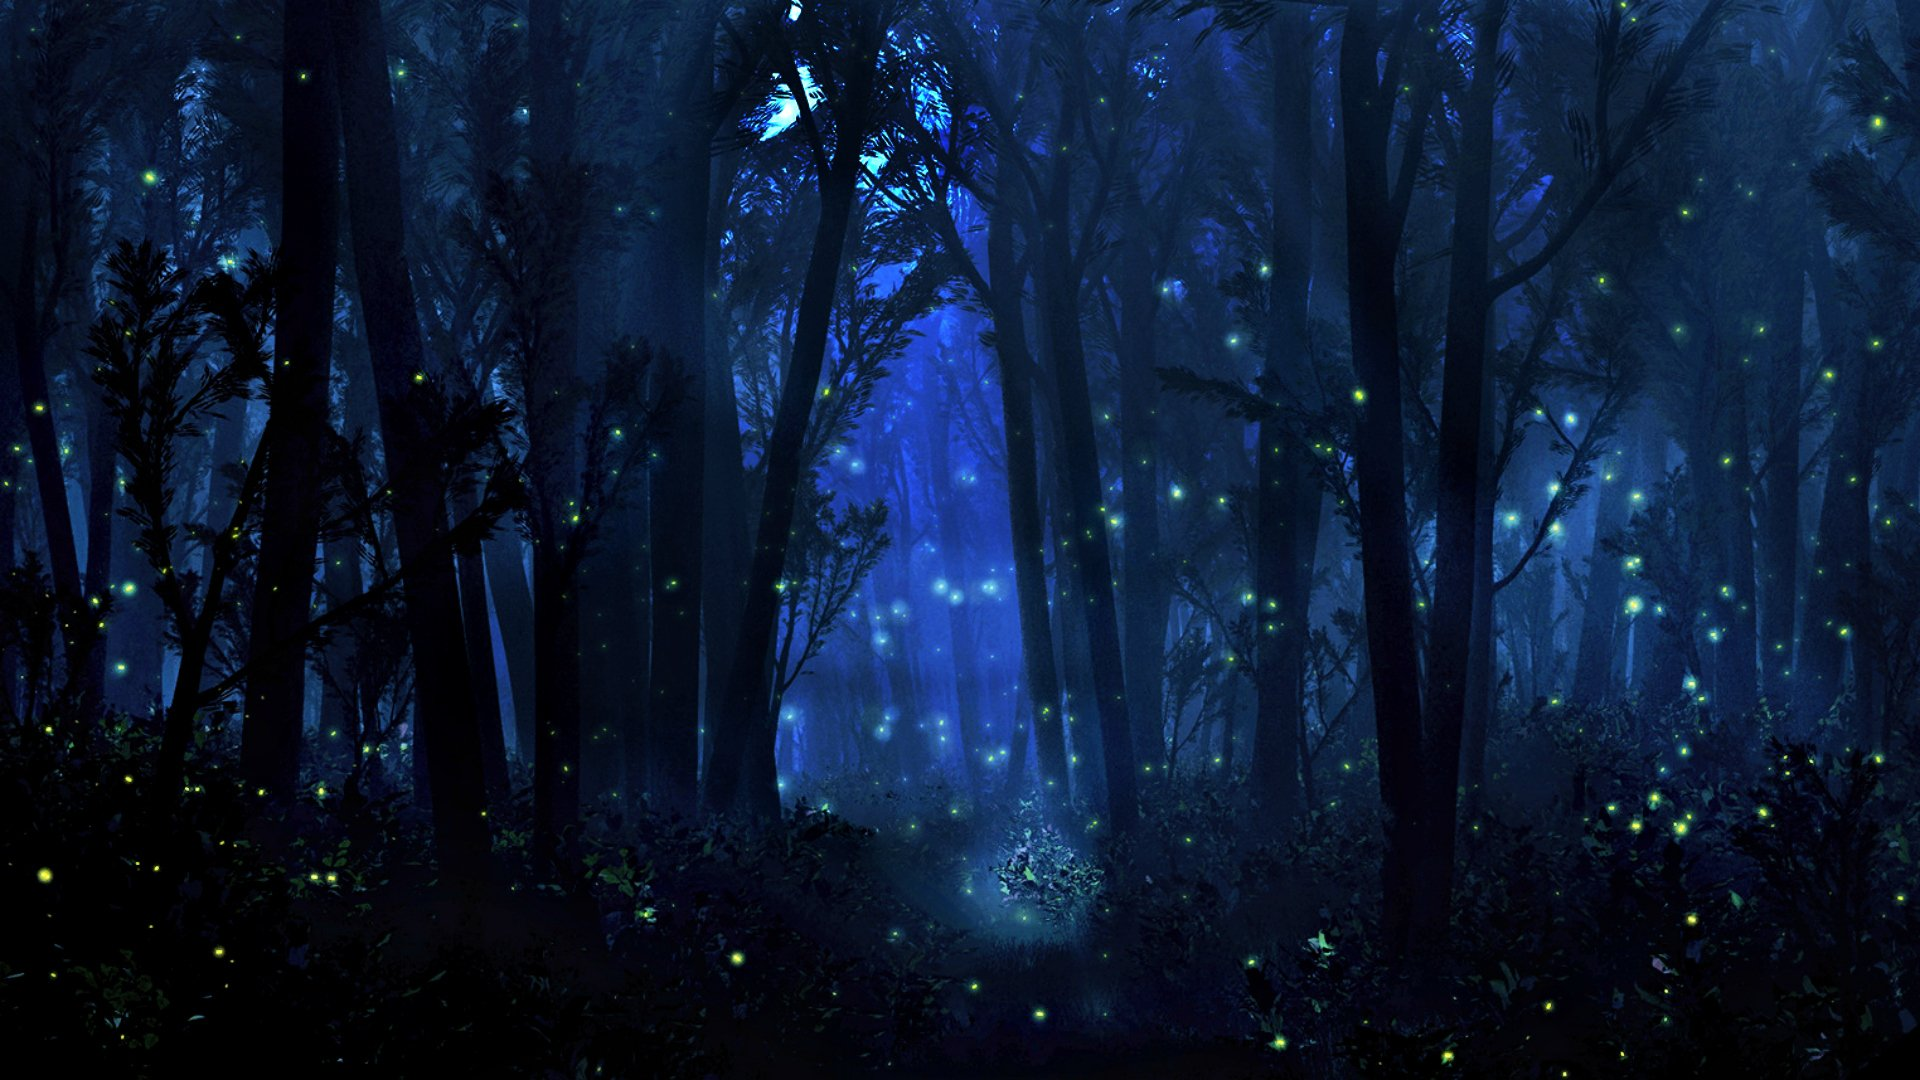 Mystical Forest Wallpaper - WallpaperSafari